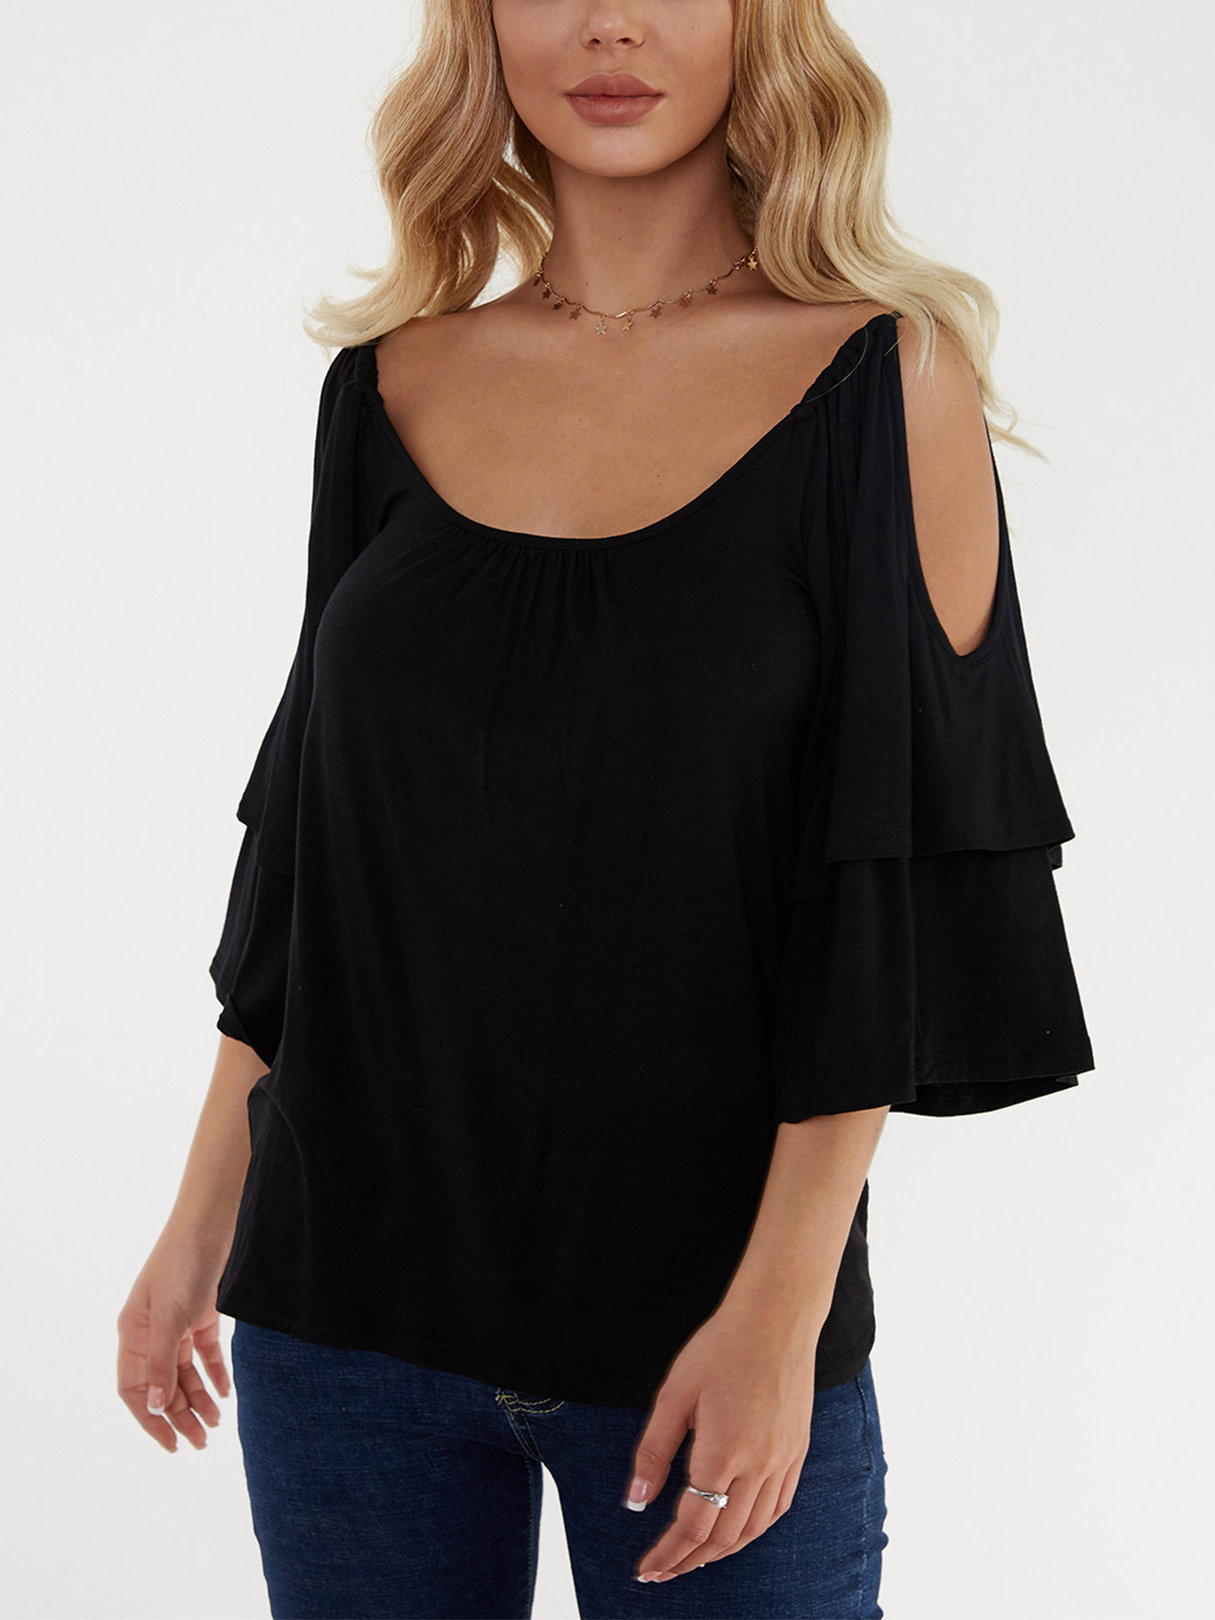 Black Tiered Design Cold Shoulder Half Sleeves T-shirts knit cold shoulder bottoming t shirts in black